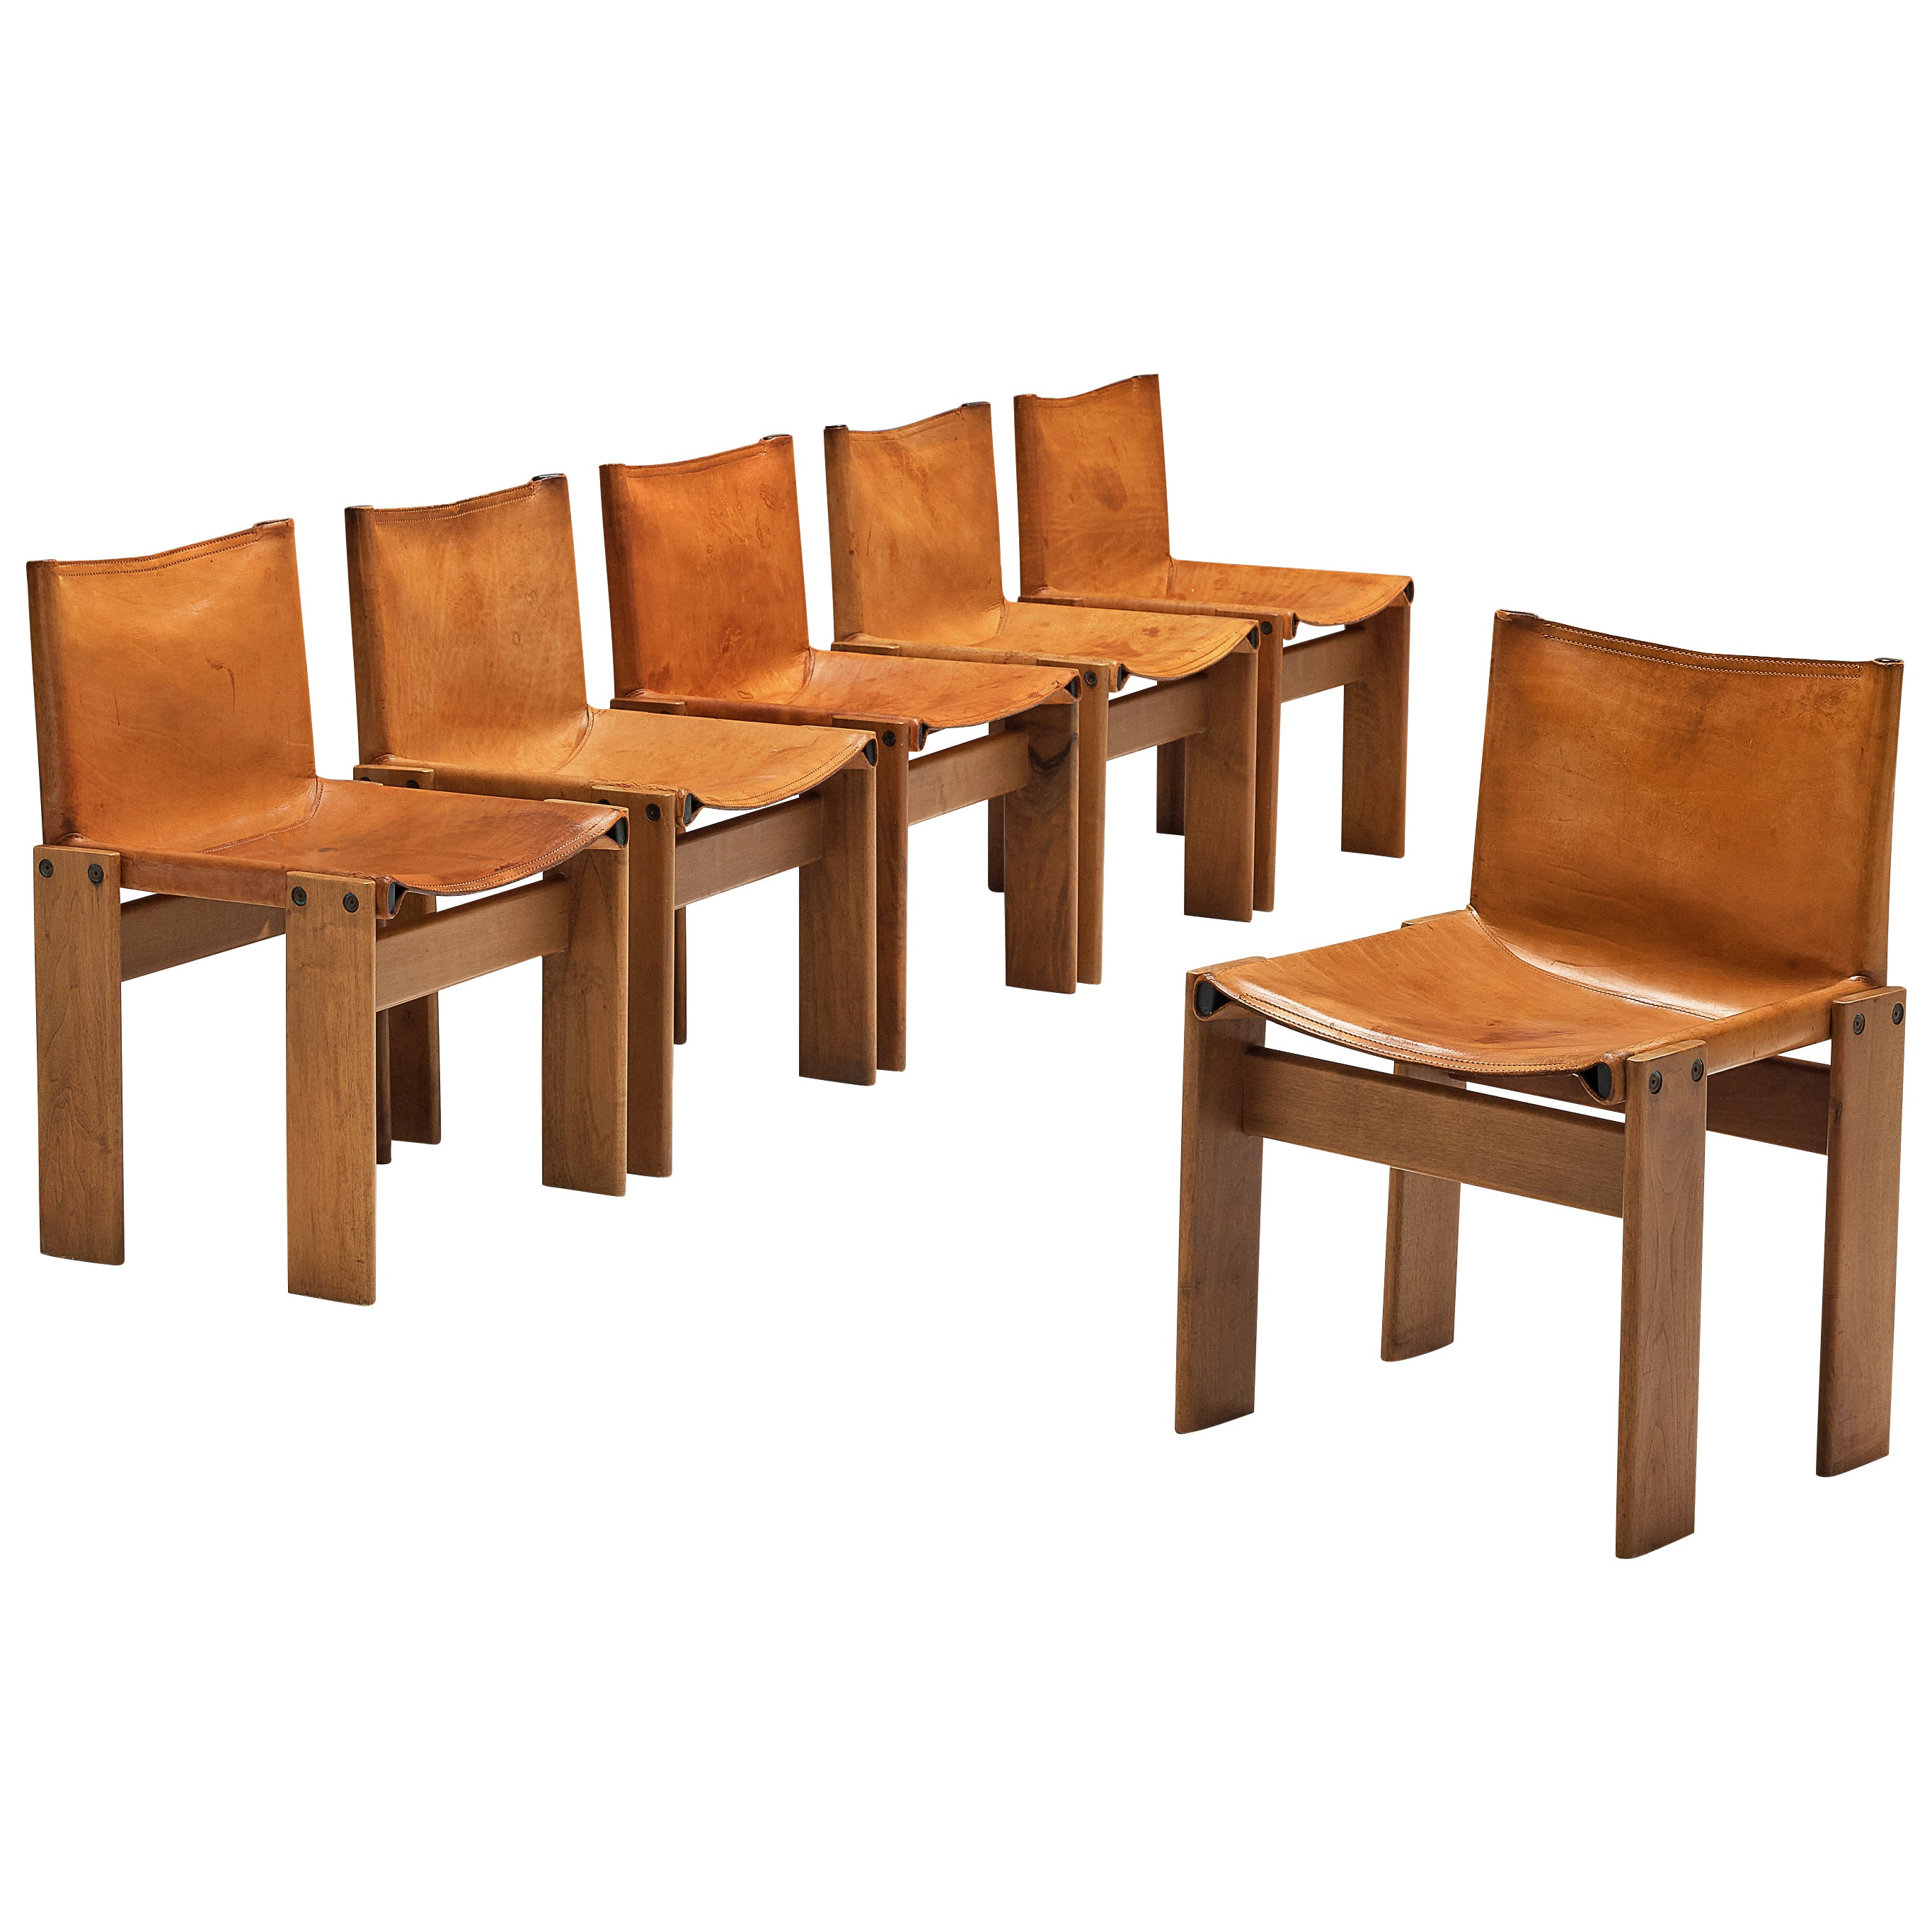 Tobia & Afra Scarpa for Molteni Set of 6 'Monk' Chairs in Cognac Leather